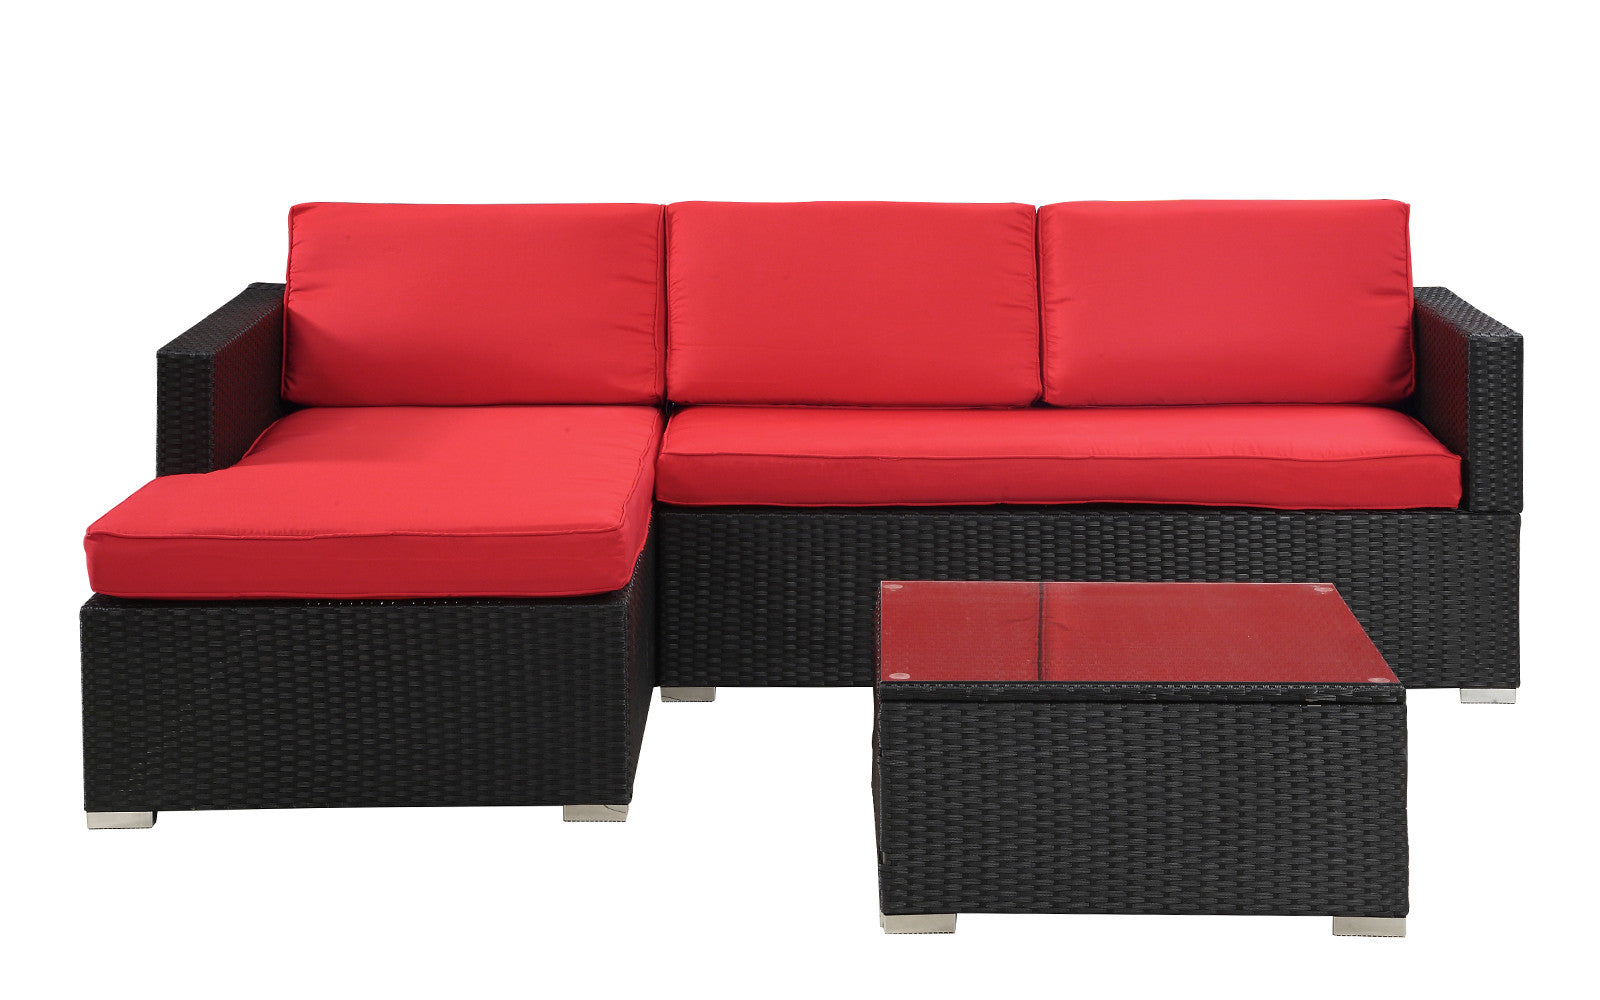 Hilo Modern Outdoor Sectional With Coffee Table In Red And Black ...